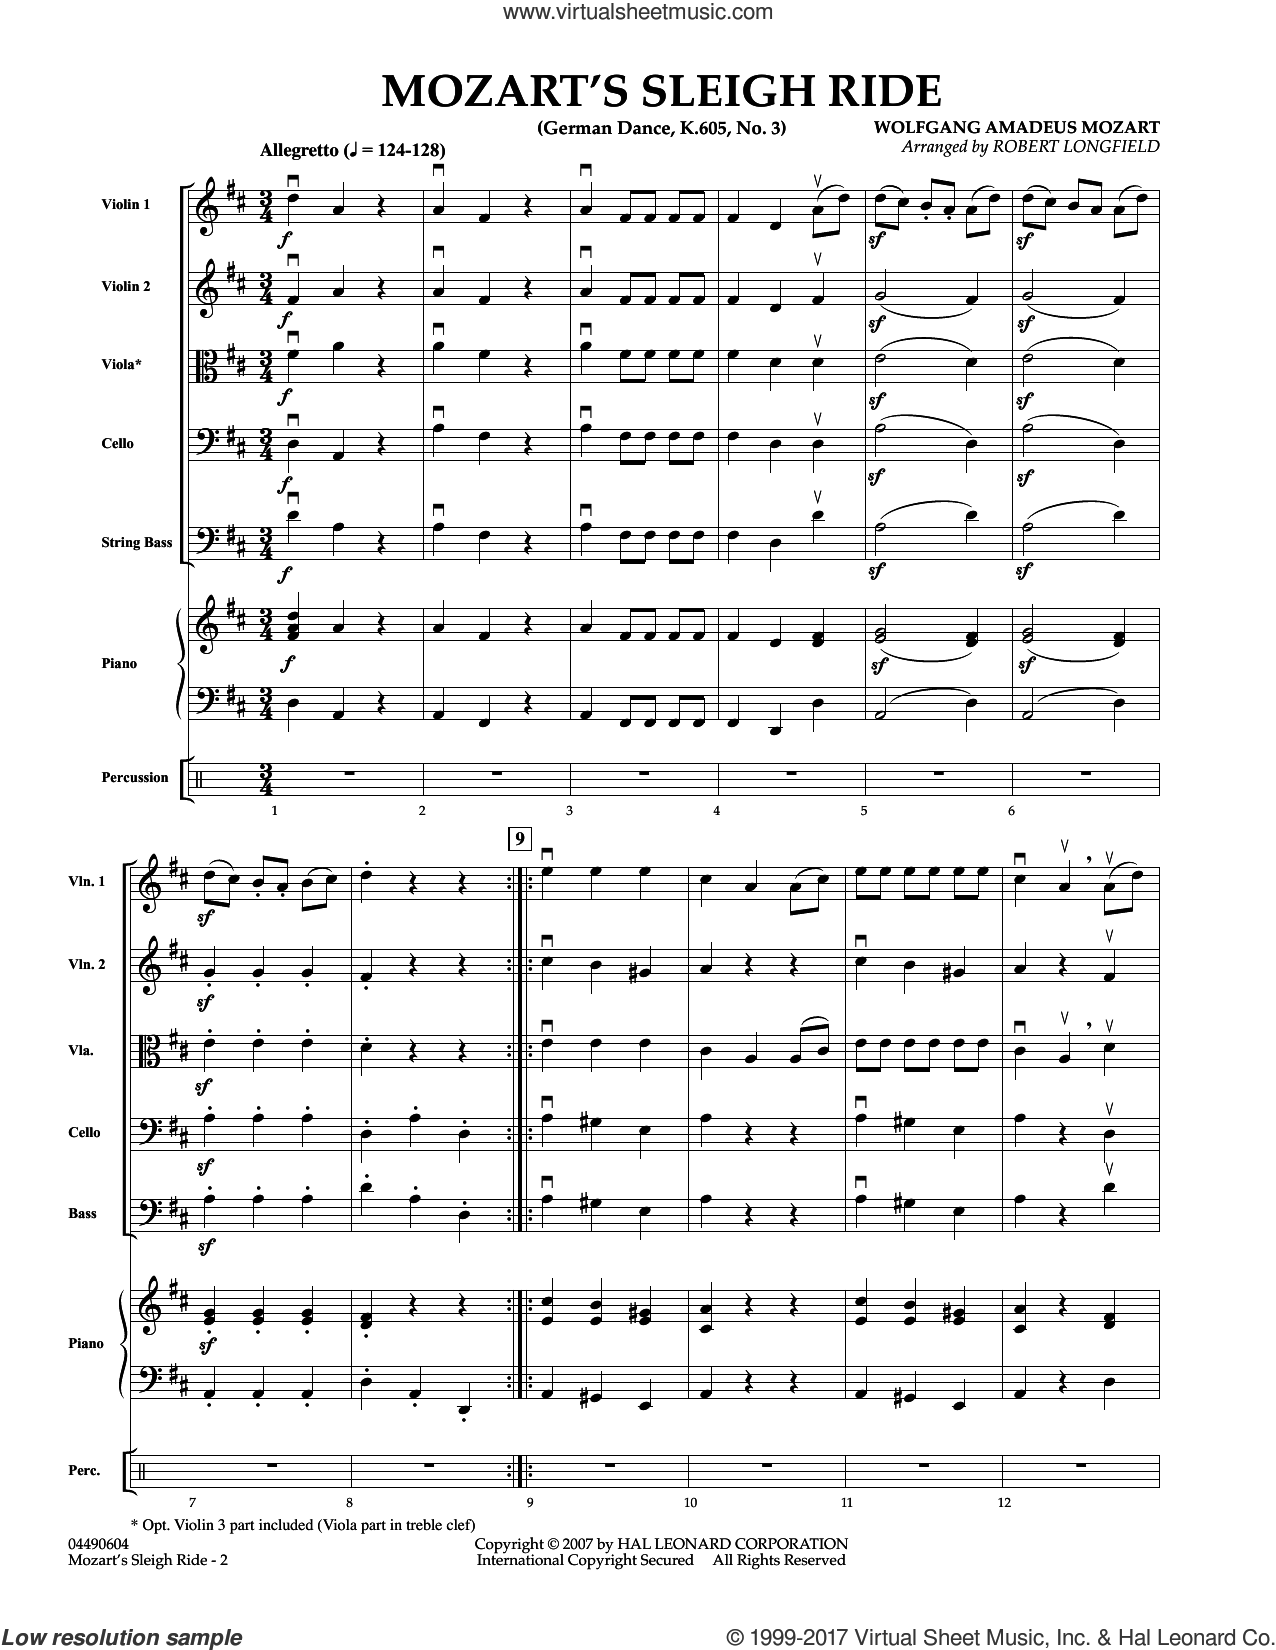 Mozart's Sleigh Ride (German Dance, K.605, No.3) (COMPLETE) sheet music for orchestra by Wolfgang Amadeus Mozart and Robert Longfield, classical score, intermediate skill level